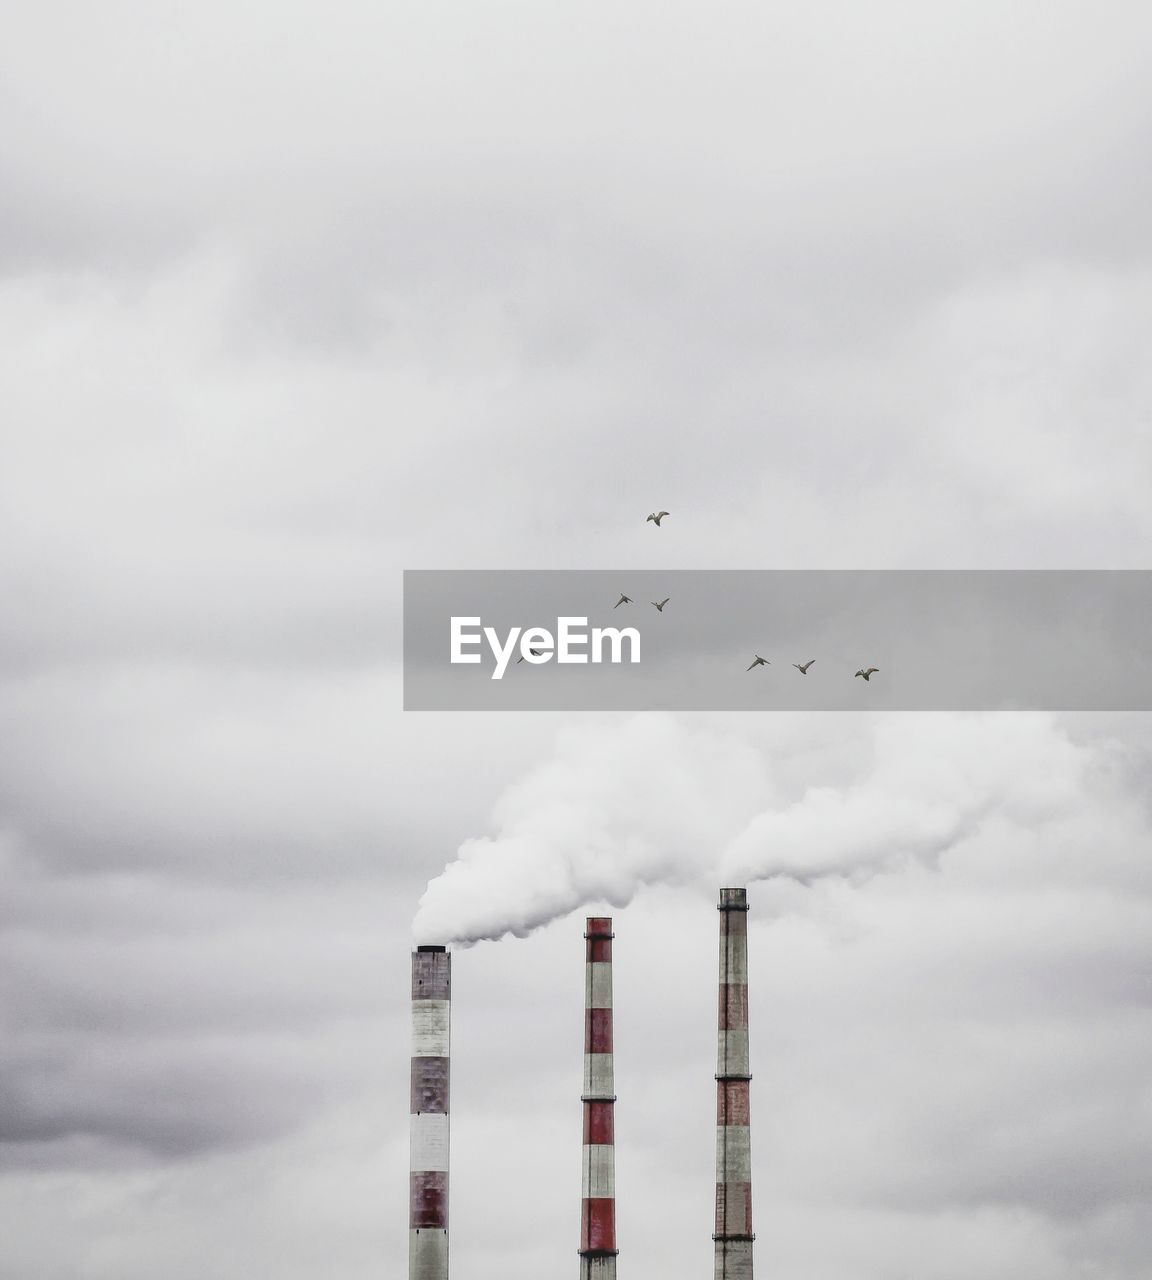 Birds Flying Over Smoke Emitting Chimneys Against Cloudy Sky